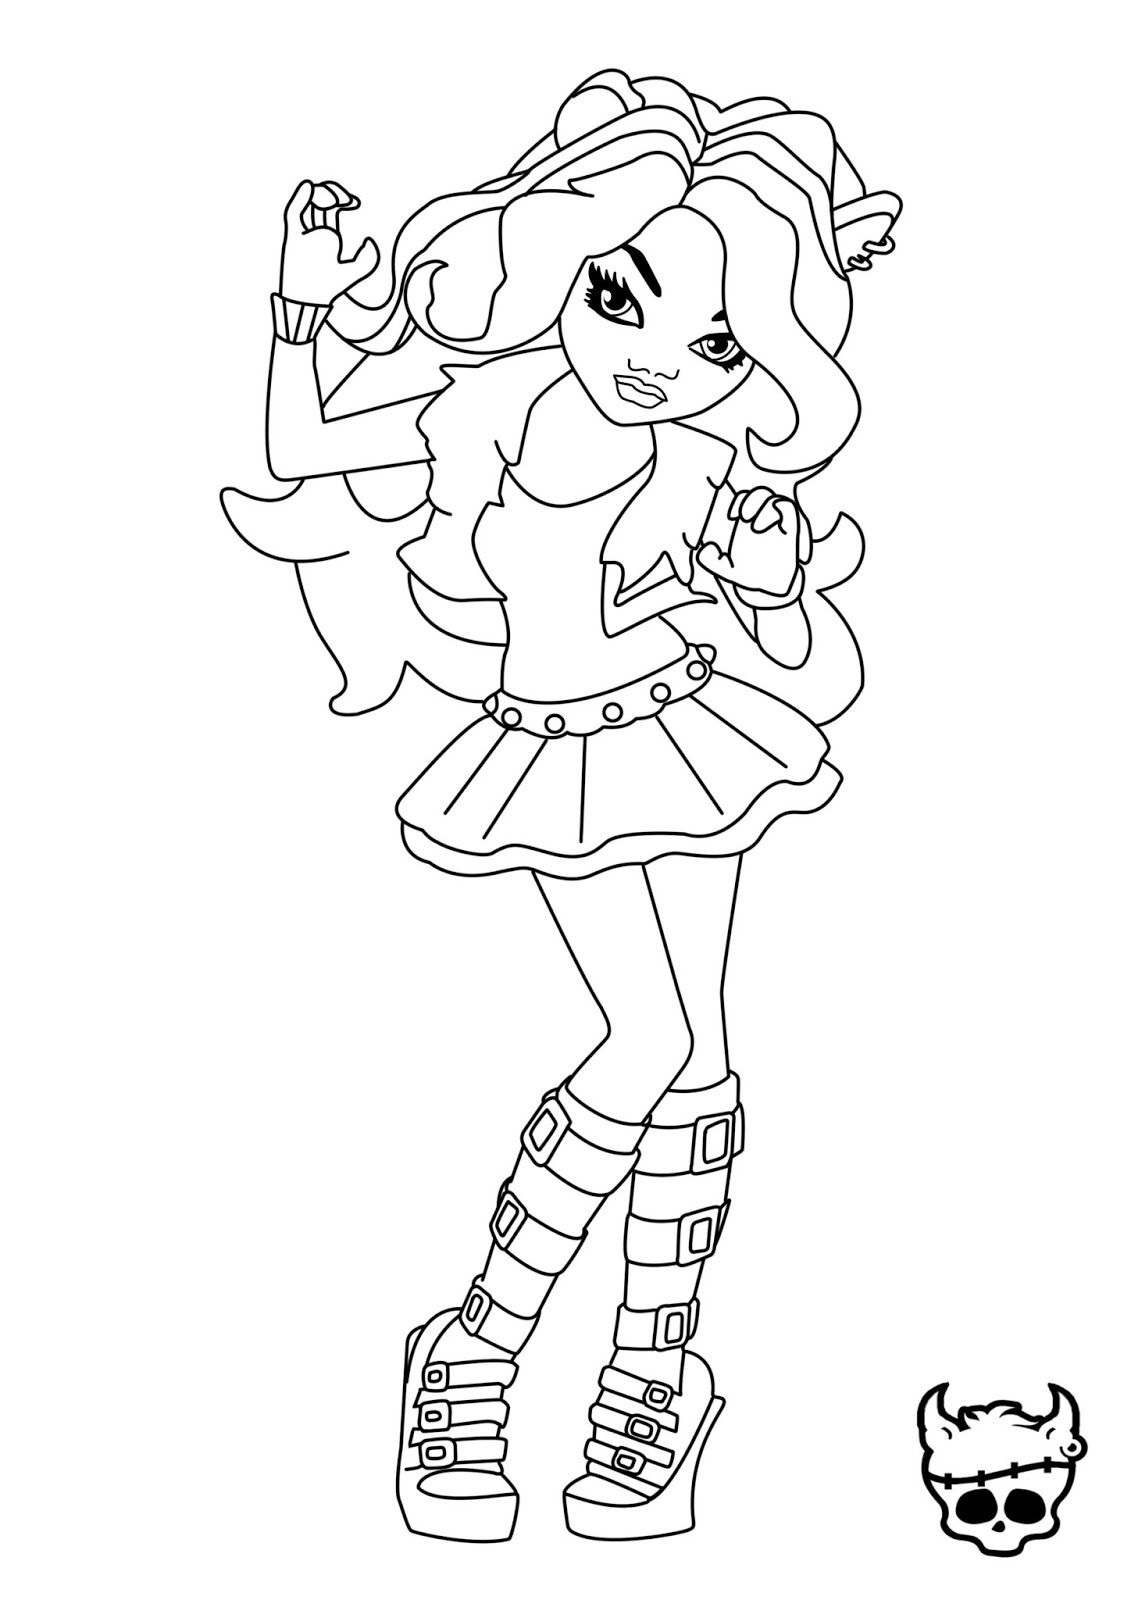 Clawdeen Wolf Coloring Pages At Getcolorings